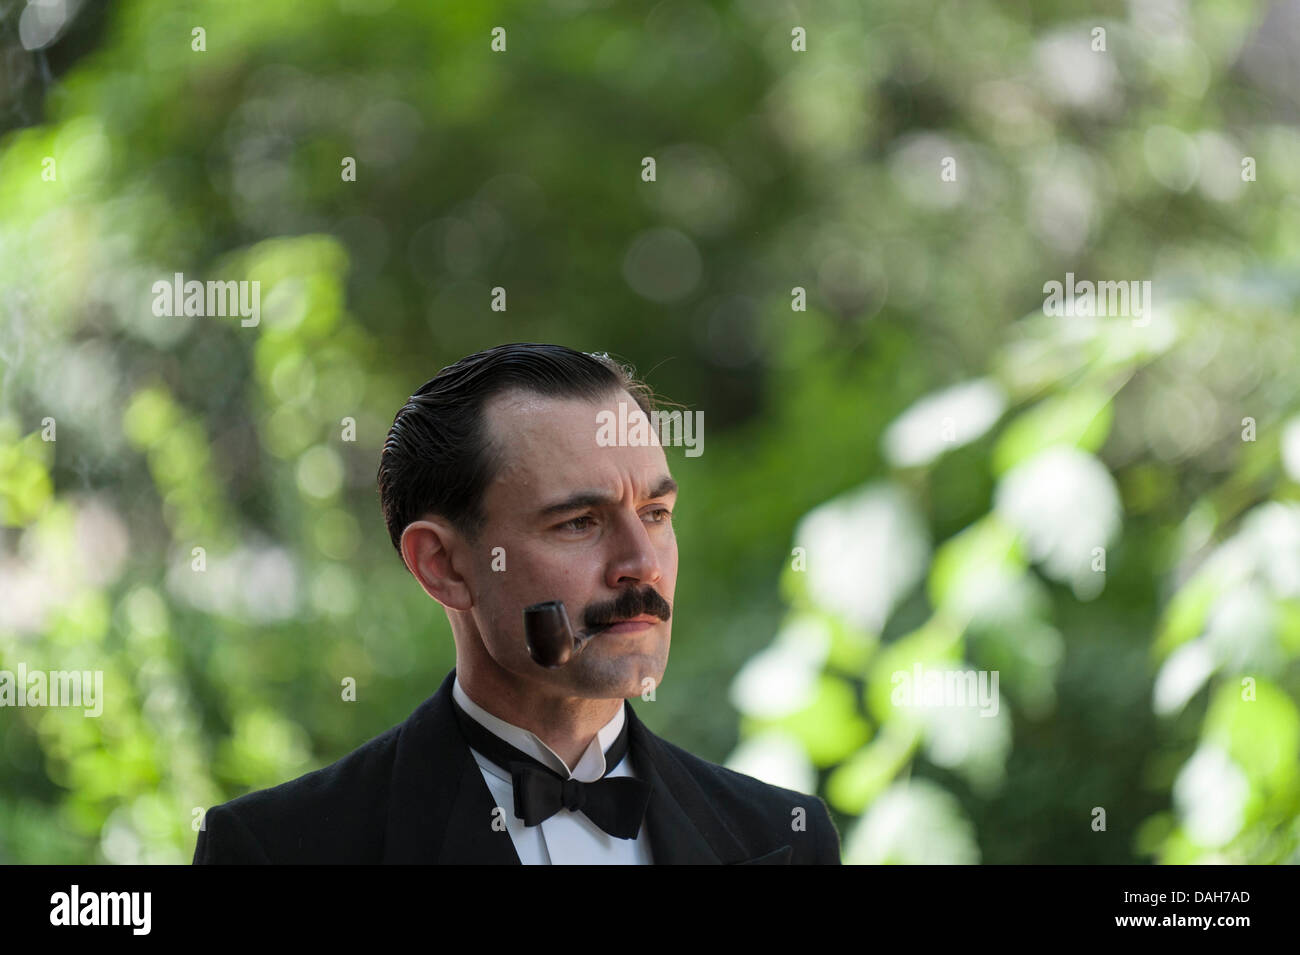 London, UK. 13 July 2013.  A pipe smoking gentleman waits for the start of the 2013 Chaps Olympiad in Bedford Square - Stock Image